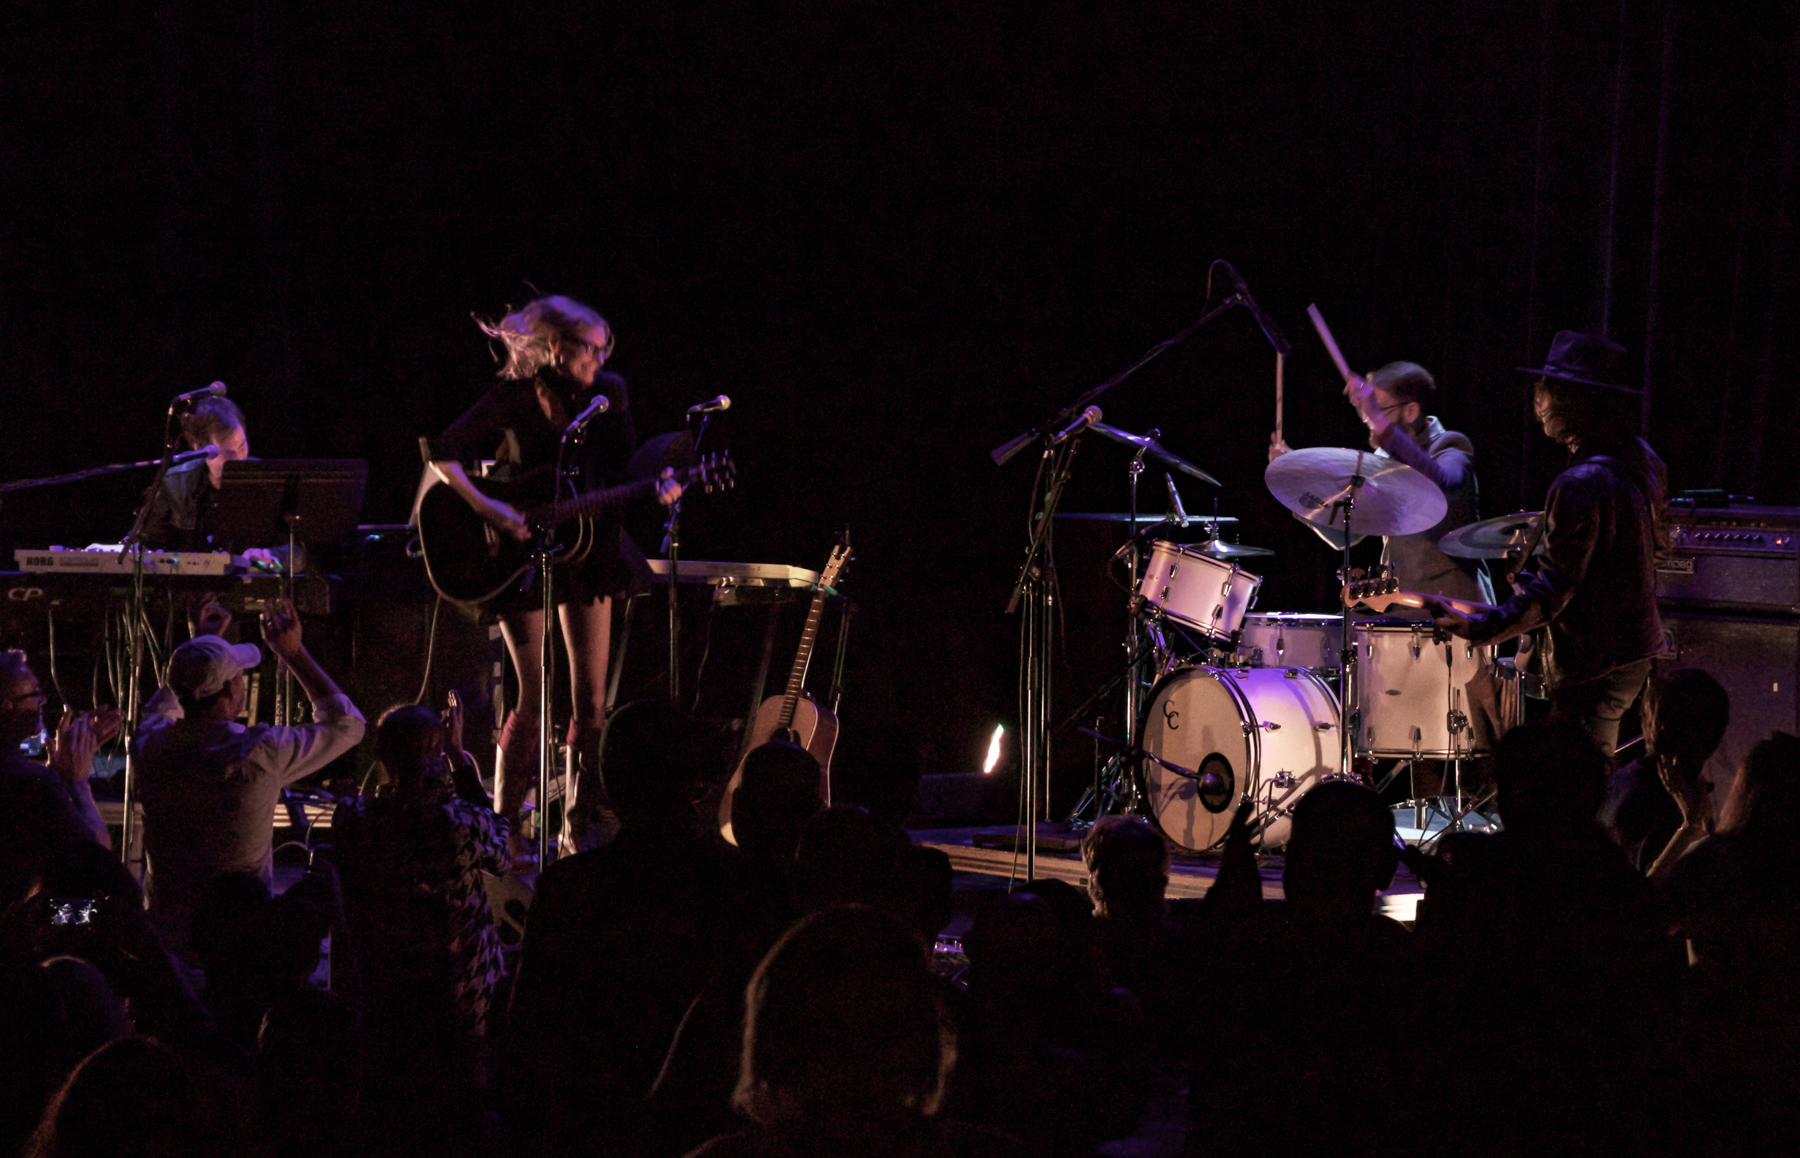 aimee mann 19 lior phillips Live Review: Aimee Mann at Chicago's Park West (4/29)